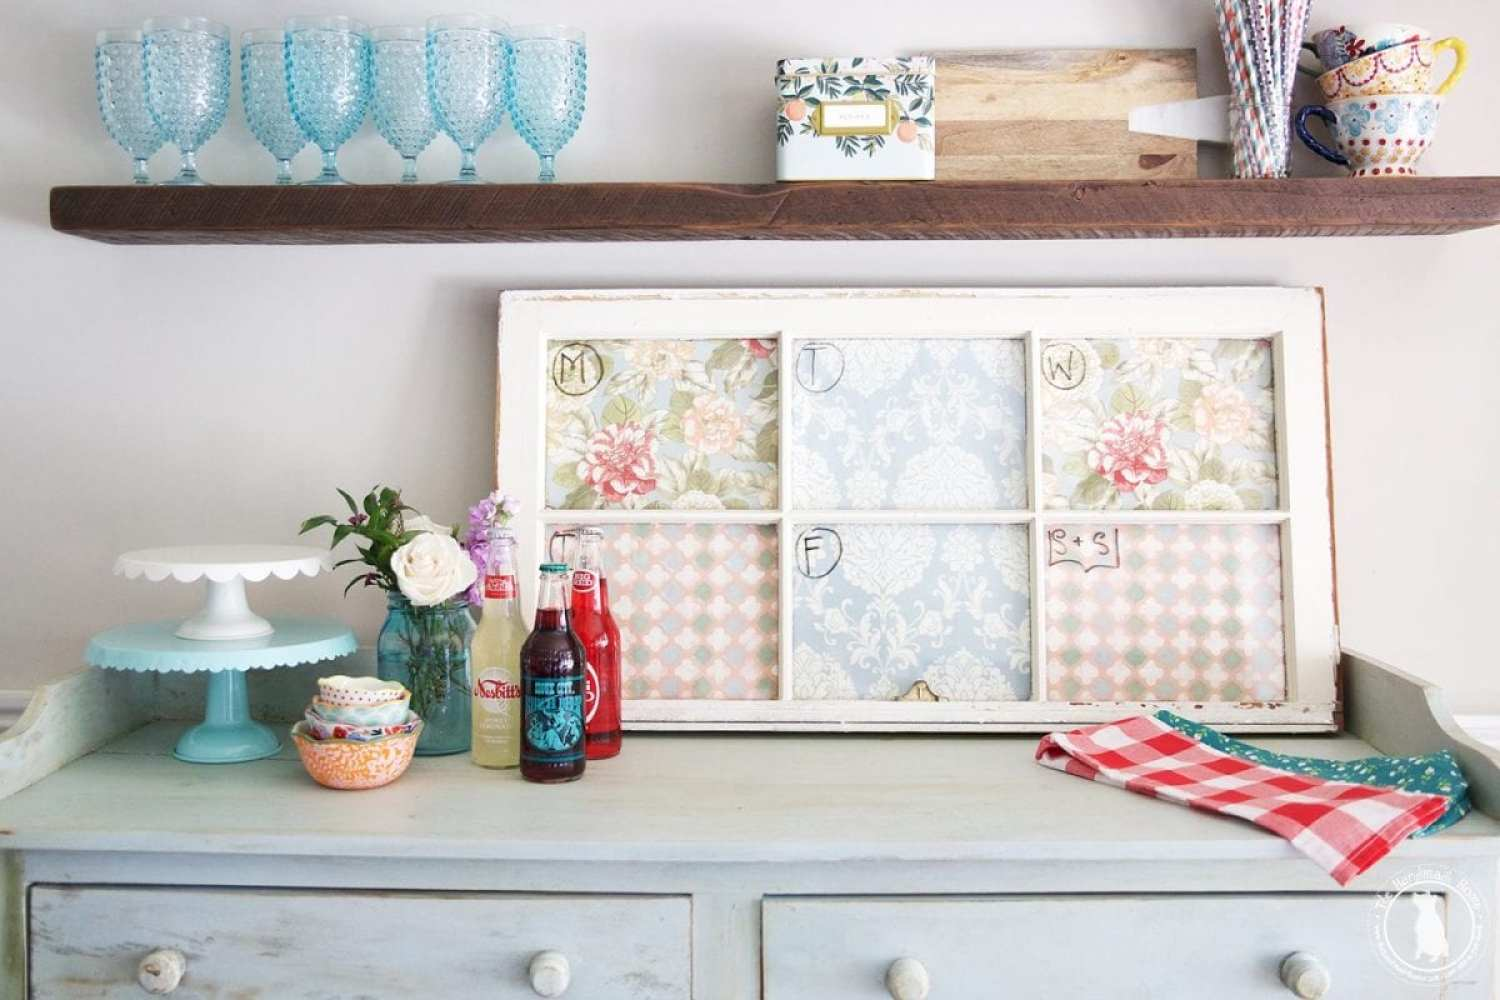 diy_kitchen_menu_planner_old_window